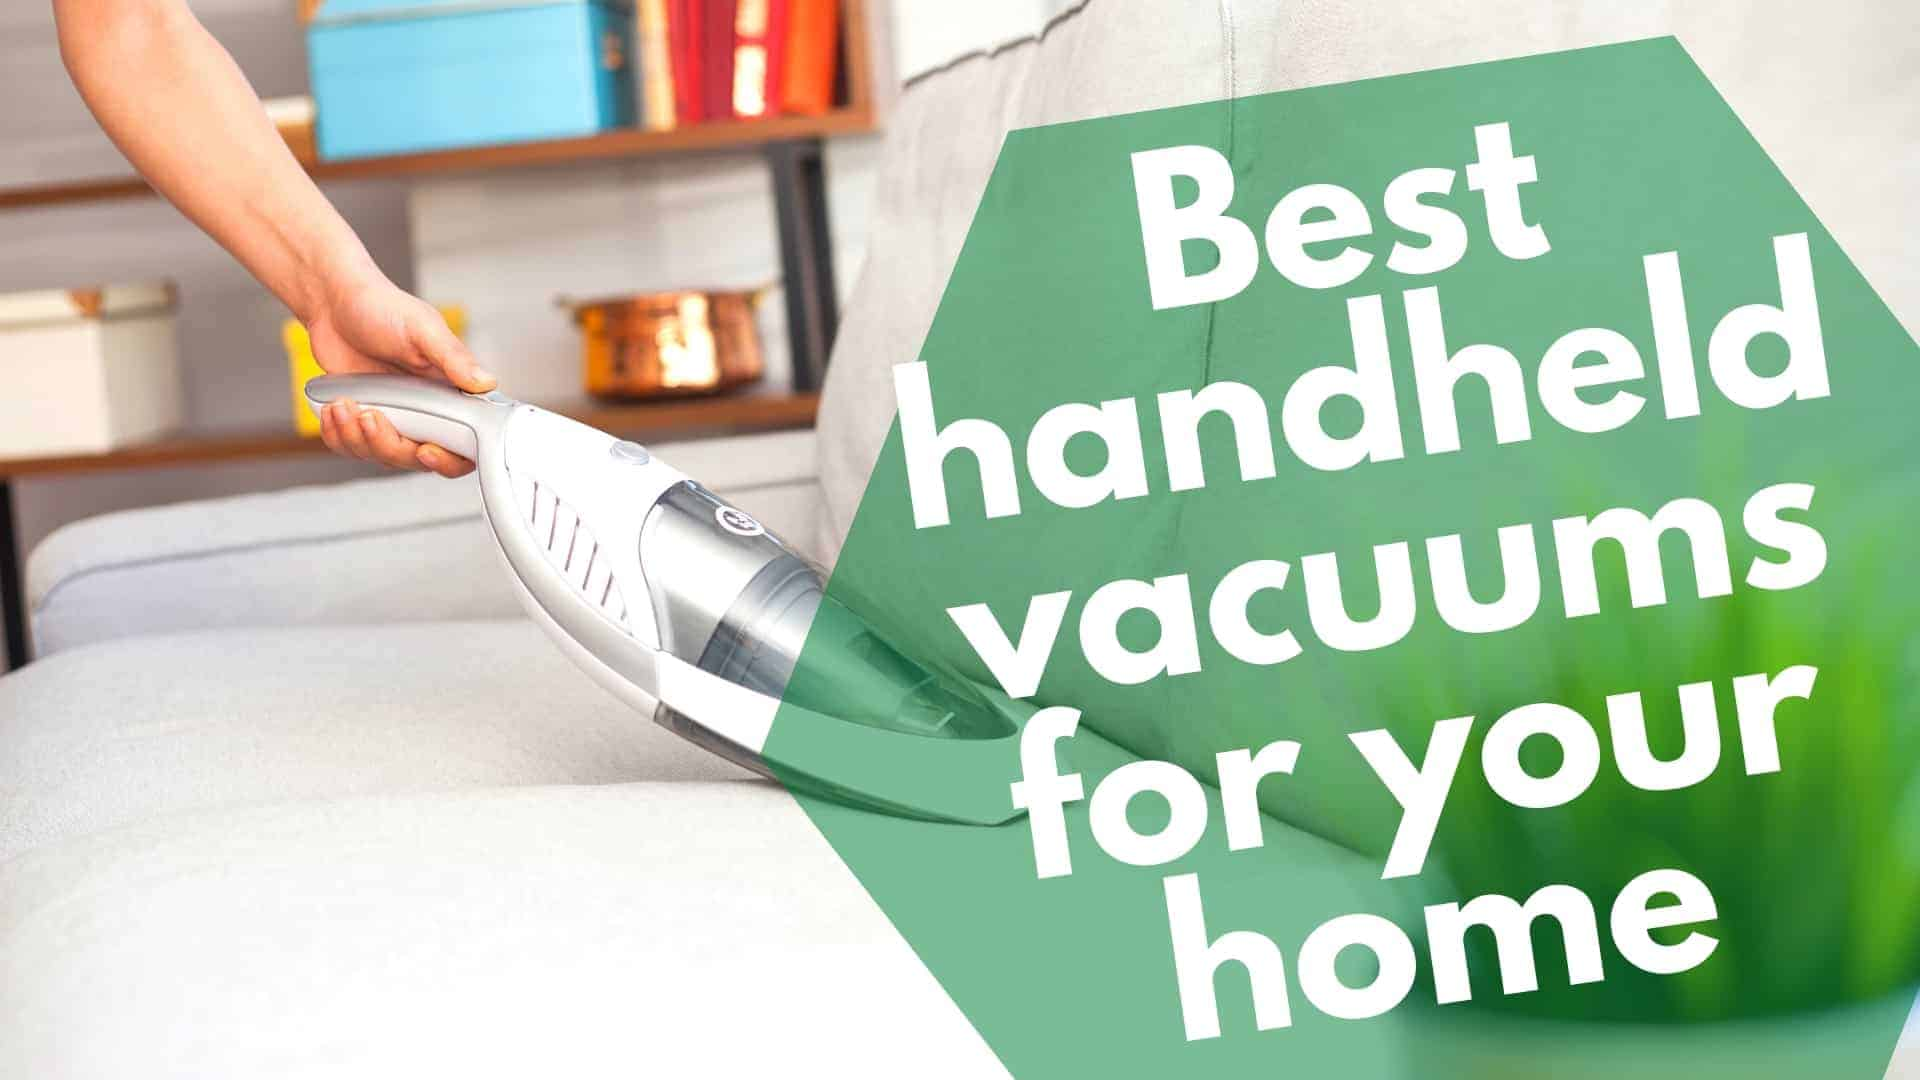 Best-handheld-vacuums-for-your-home